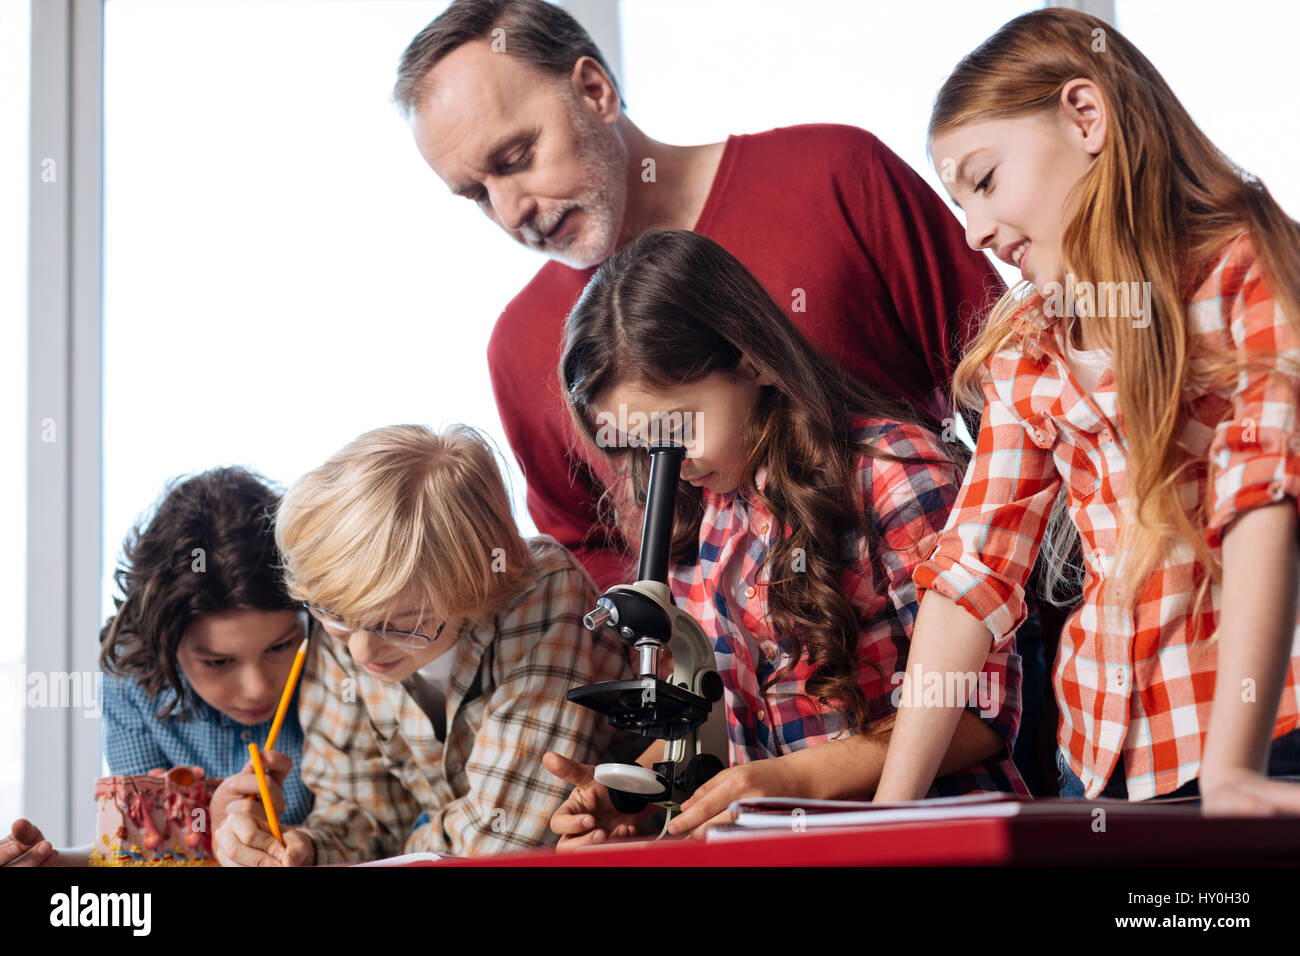 Admirable professional teacher assisting his students - Stock Image